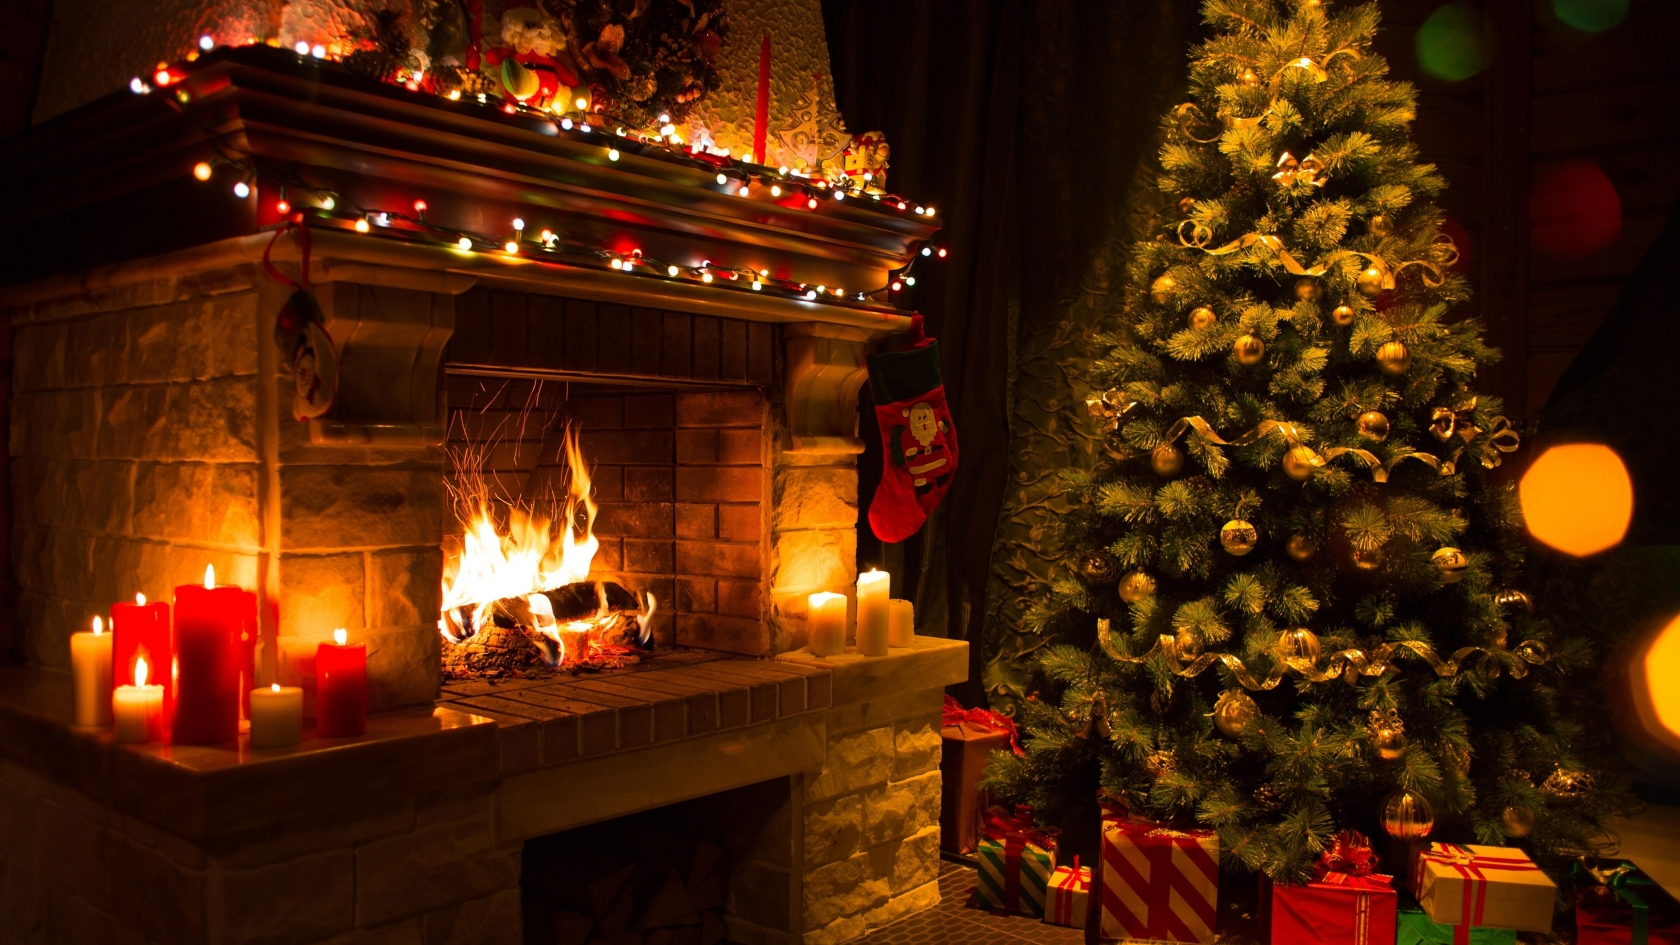 Christmas Home Decorations for 1680 x 945 HDTV resolution